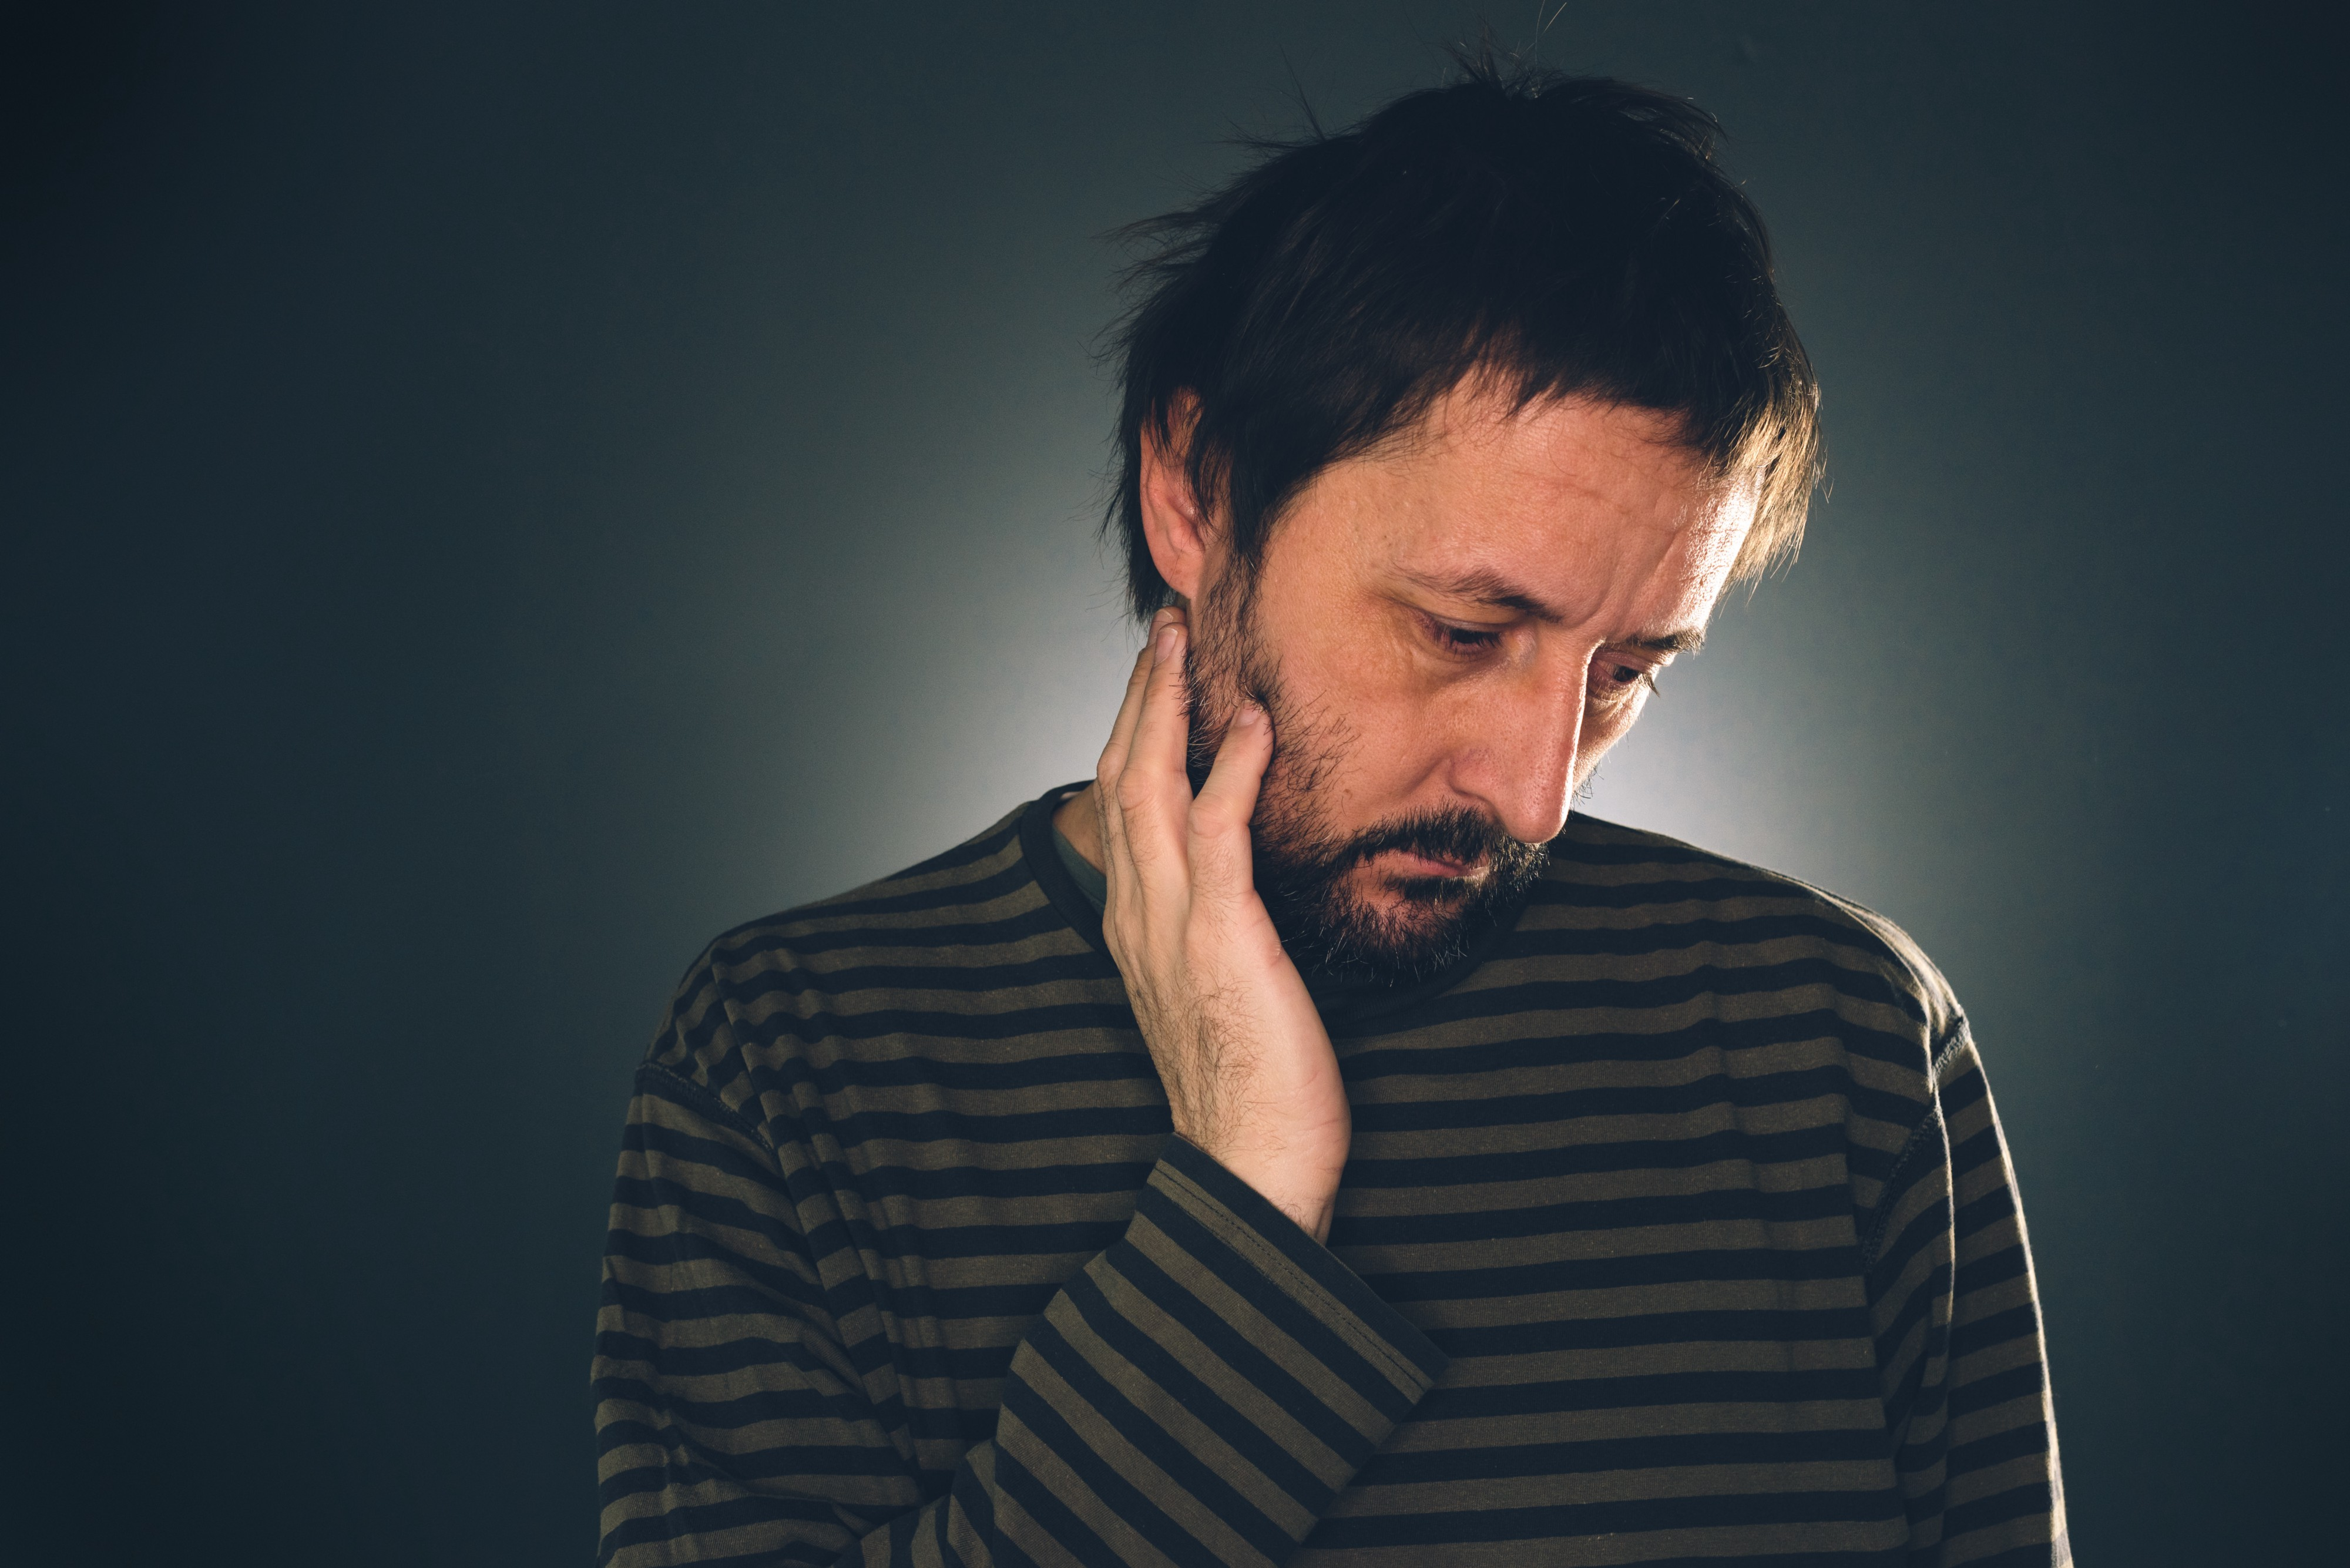 A depressed man hangs his head sadly while thinking intrusive thoughts.